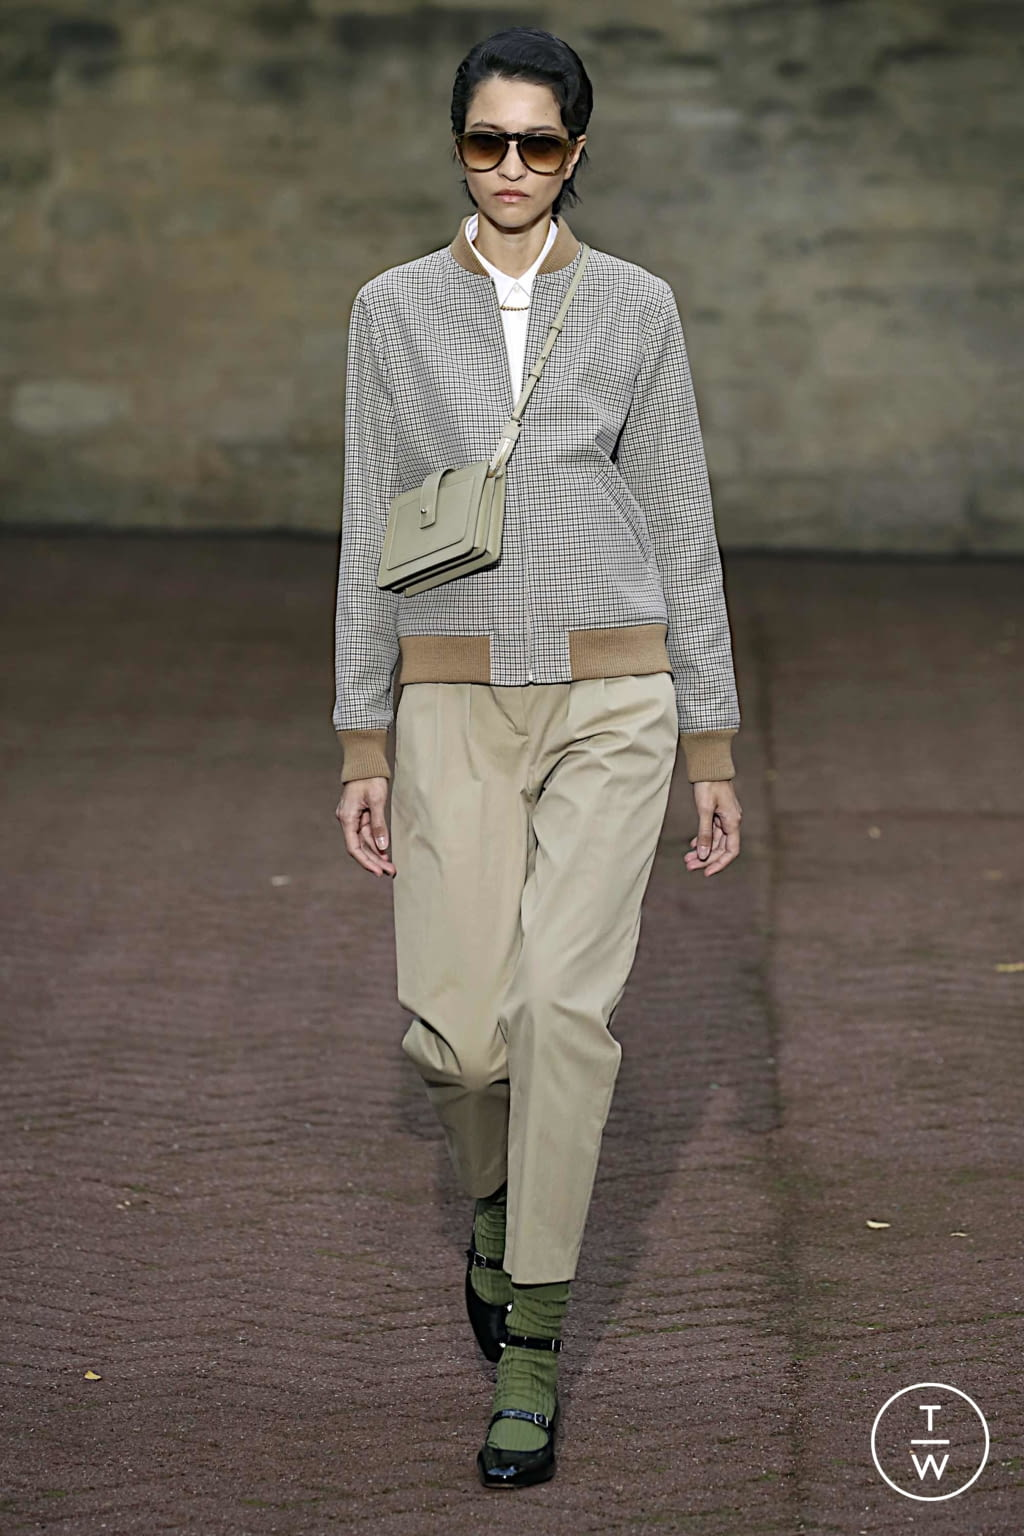 Fashion Week Paris Spring/Summer 2020 look 6 de la collection Apc womenswear